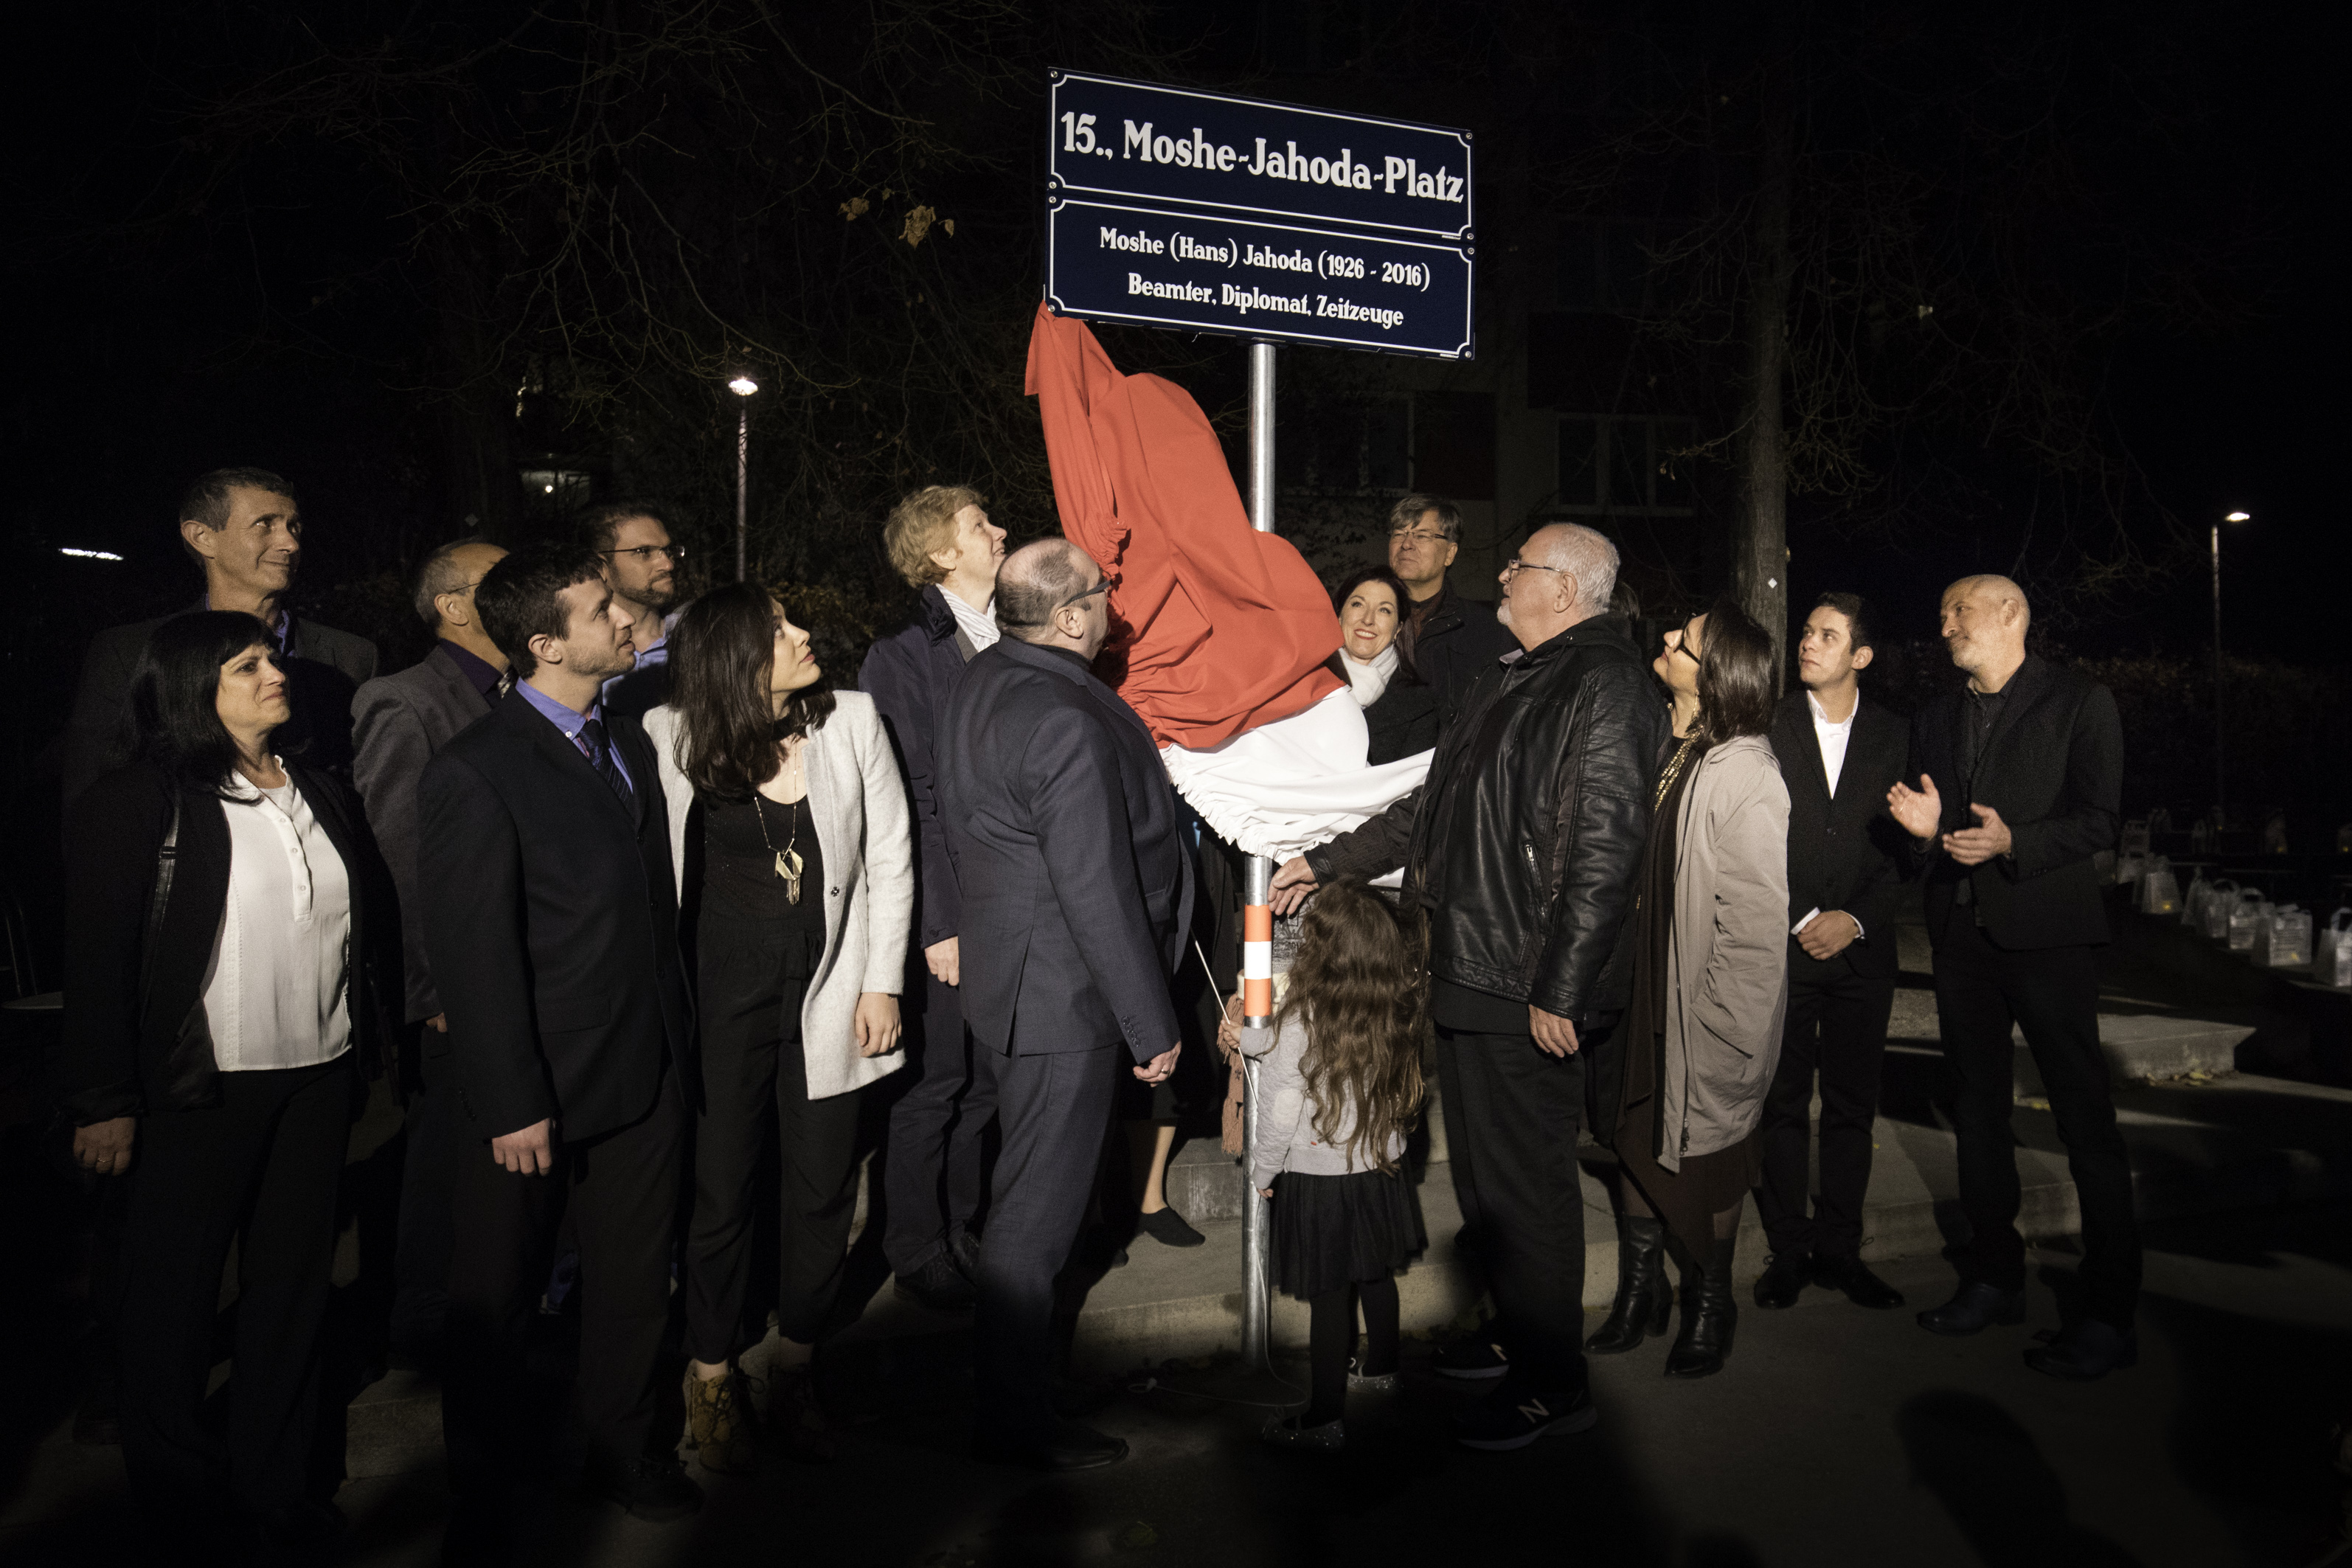 Moshe Jahoda Honored in Vienna Square Dedication